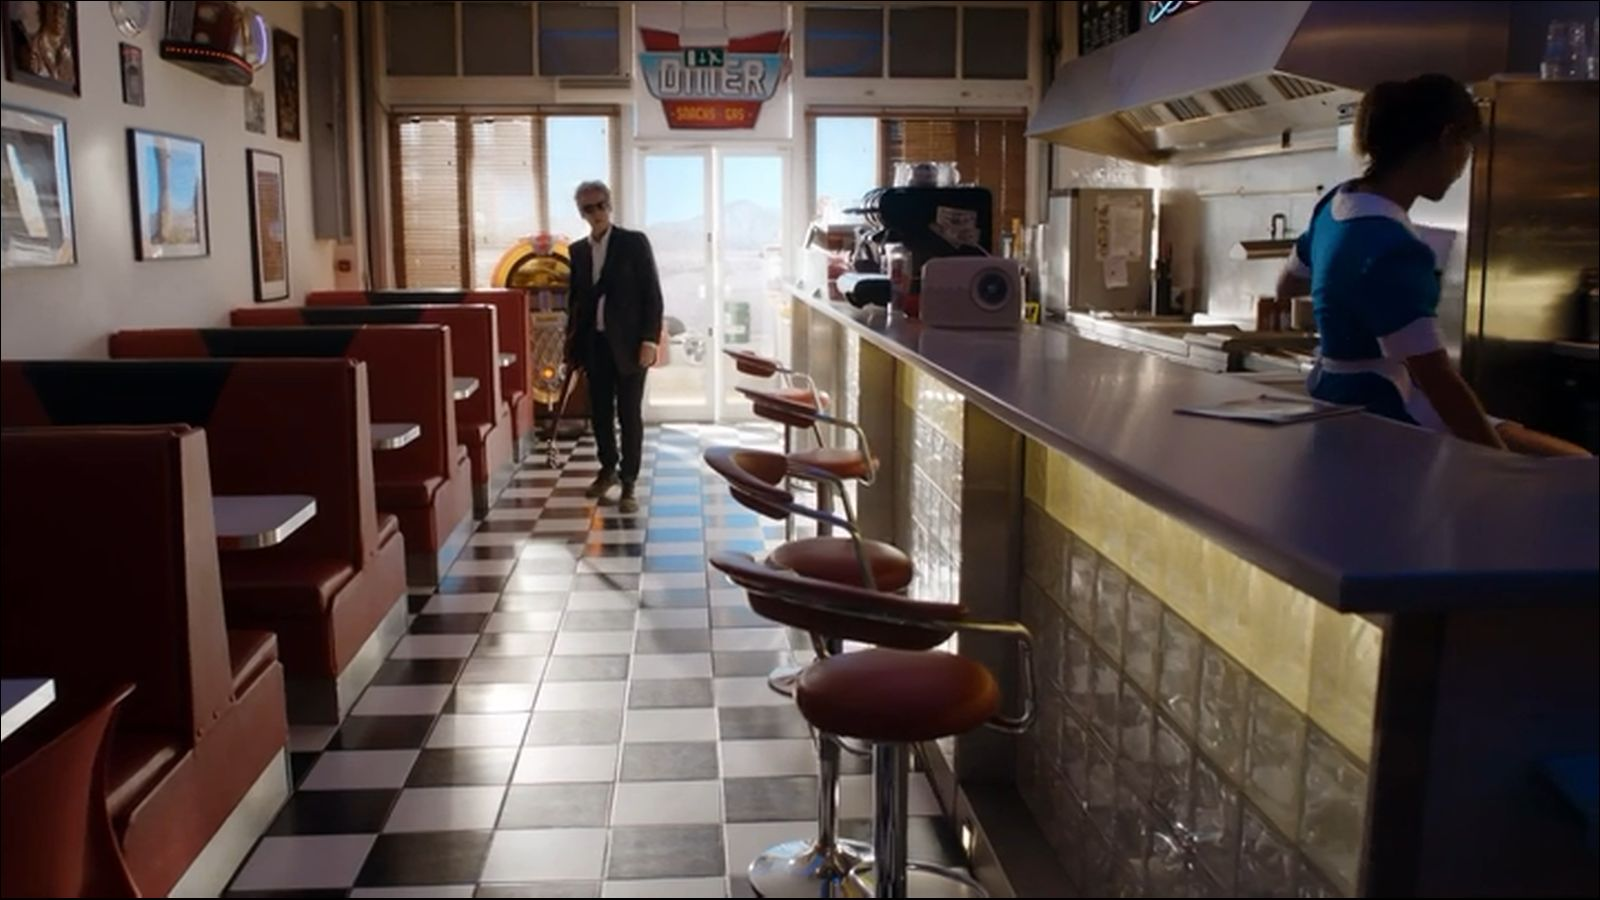 Amy River and Rory arrive at the diner. There is a young black man manning the place. Above the door is a large round circle with an Exit sign. & Doctor Who Diner Inconsistencies | geoffgould.net